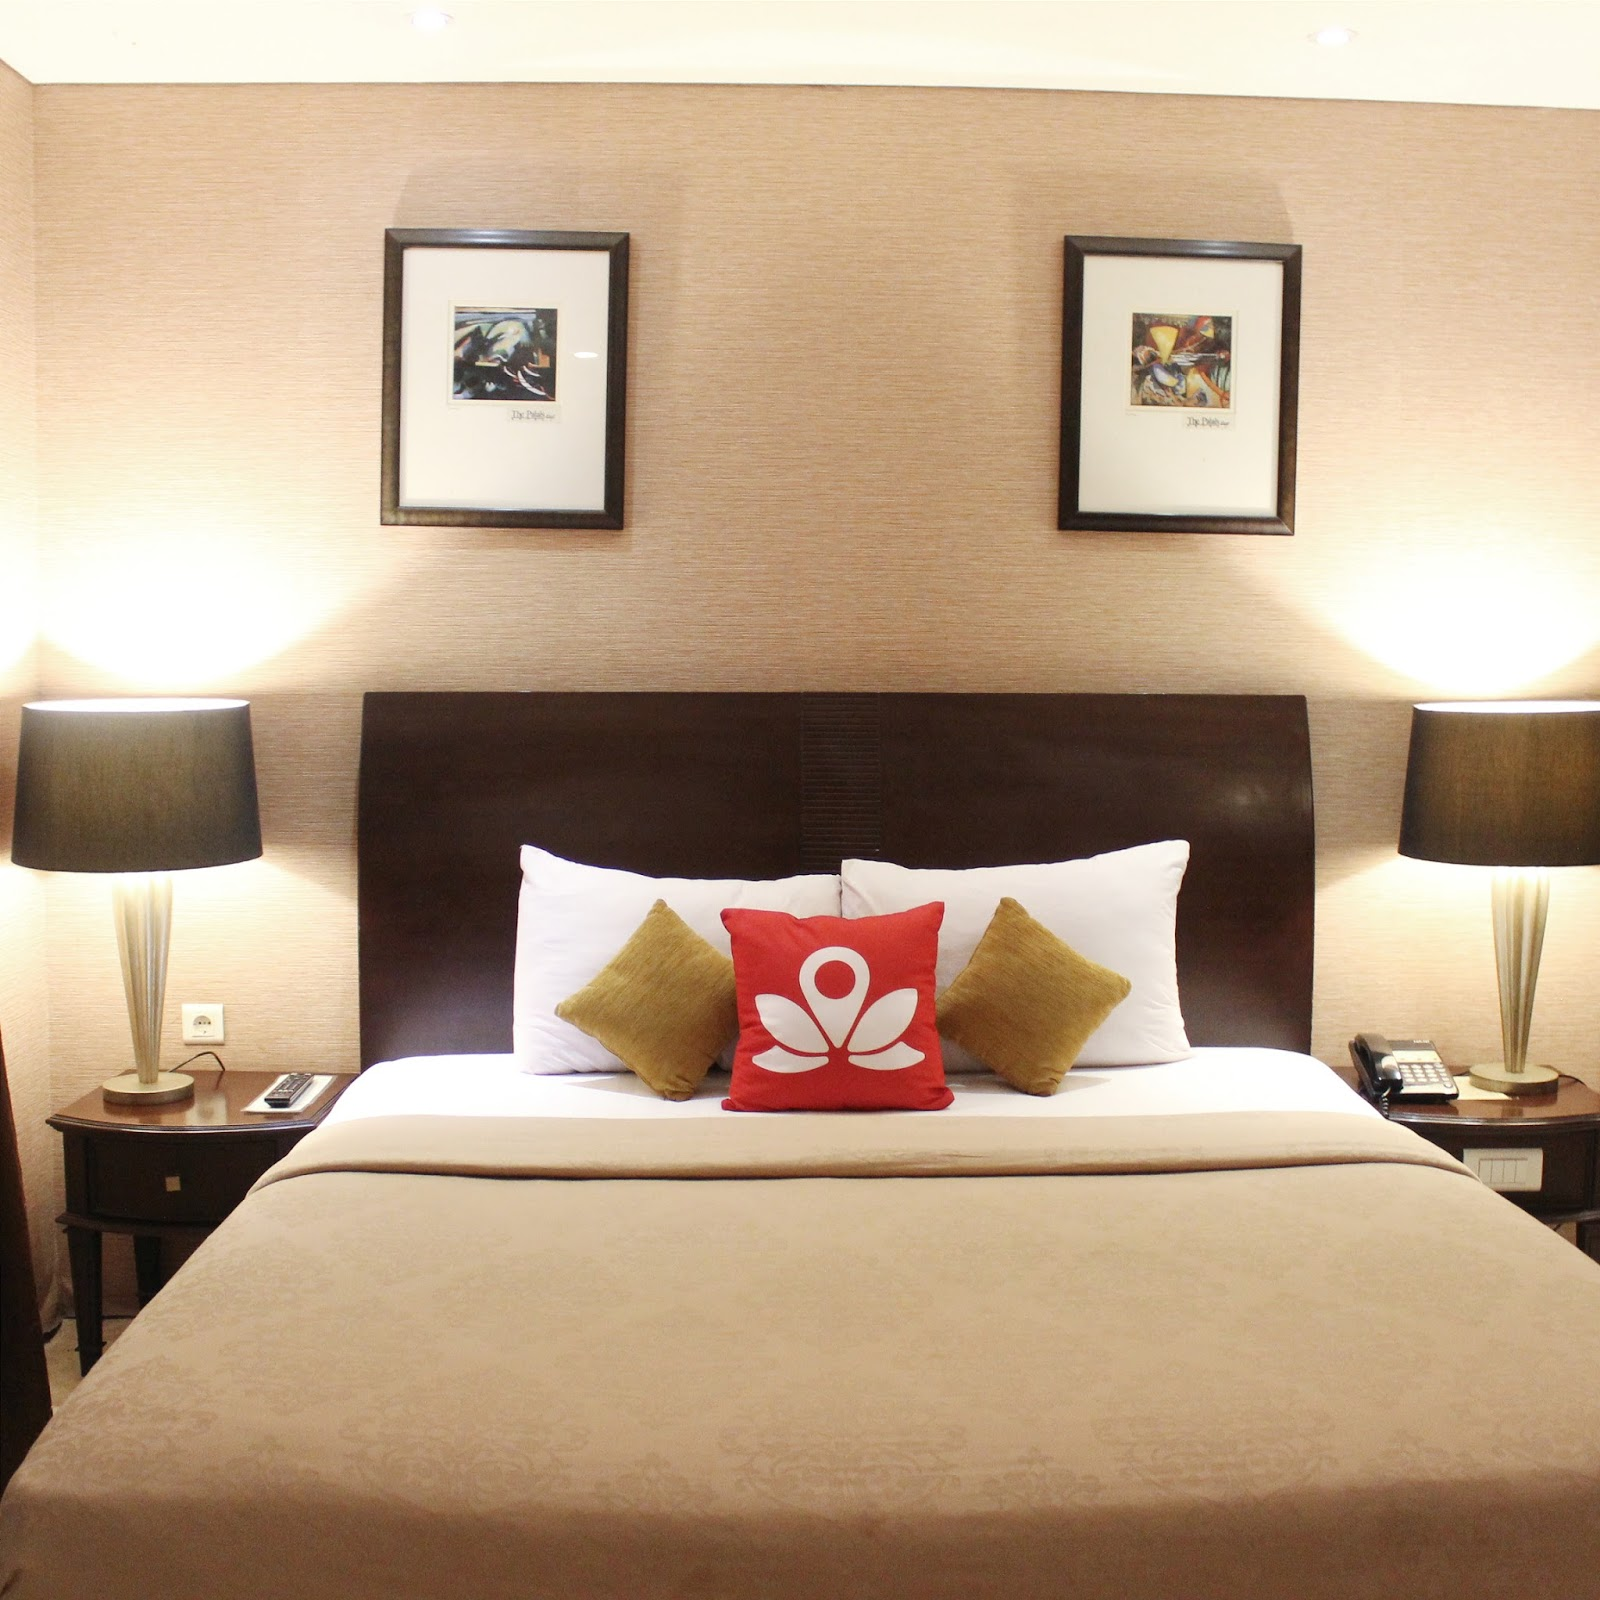 Budget Hotel Rooms In Las Vages